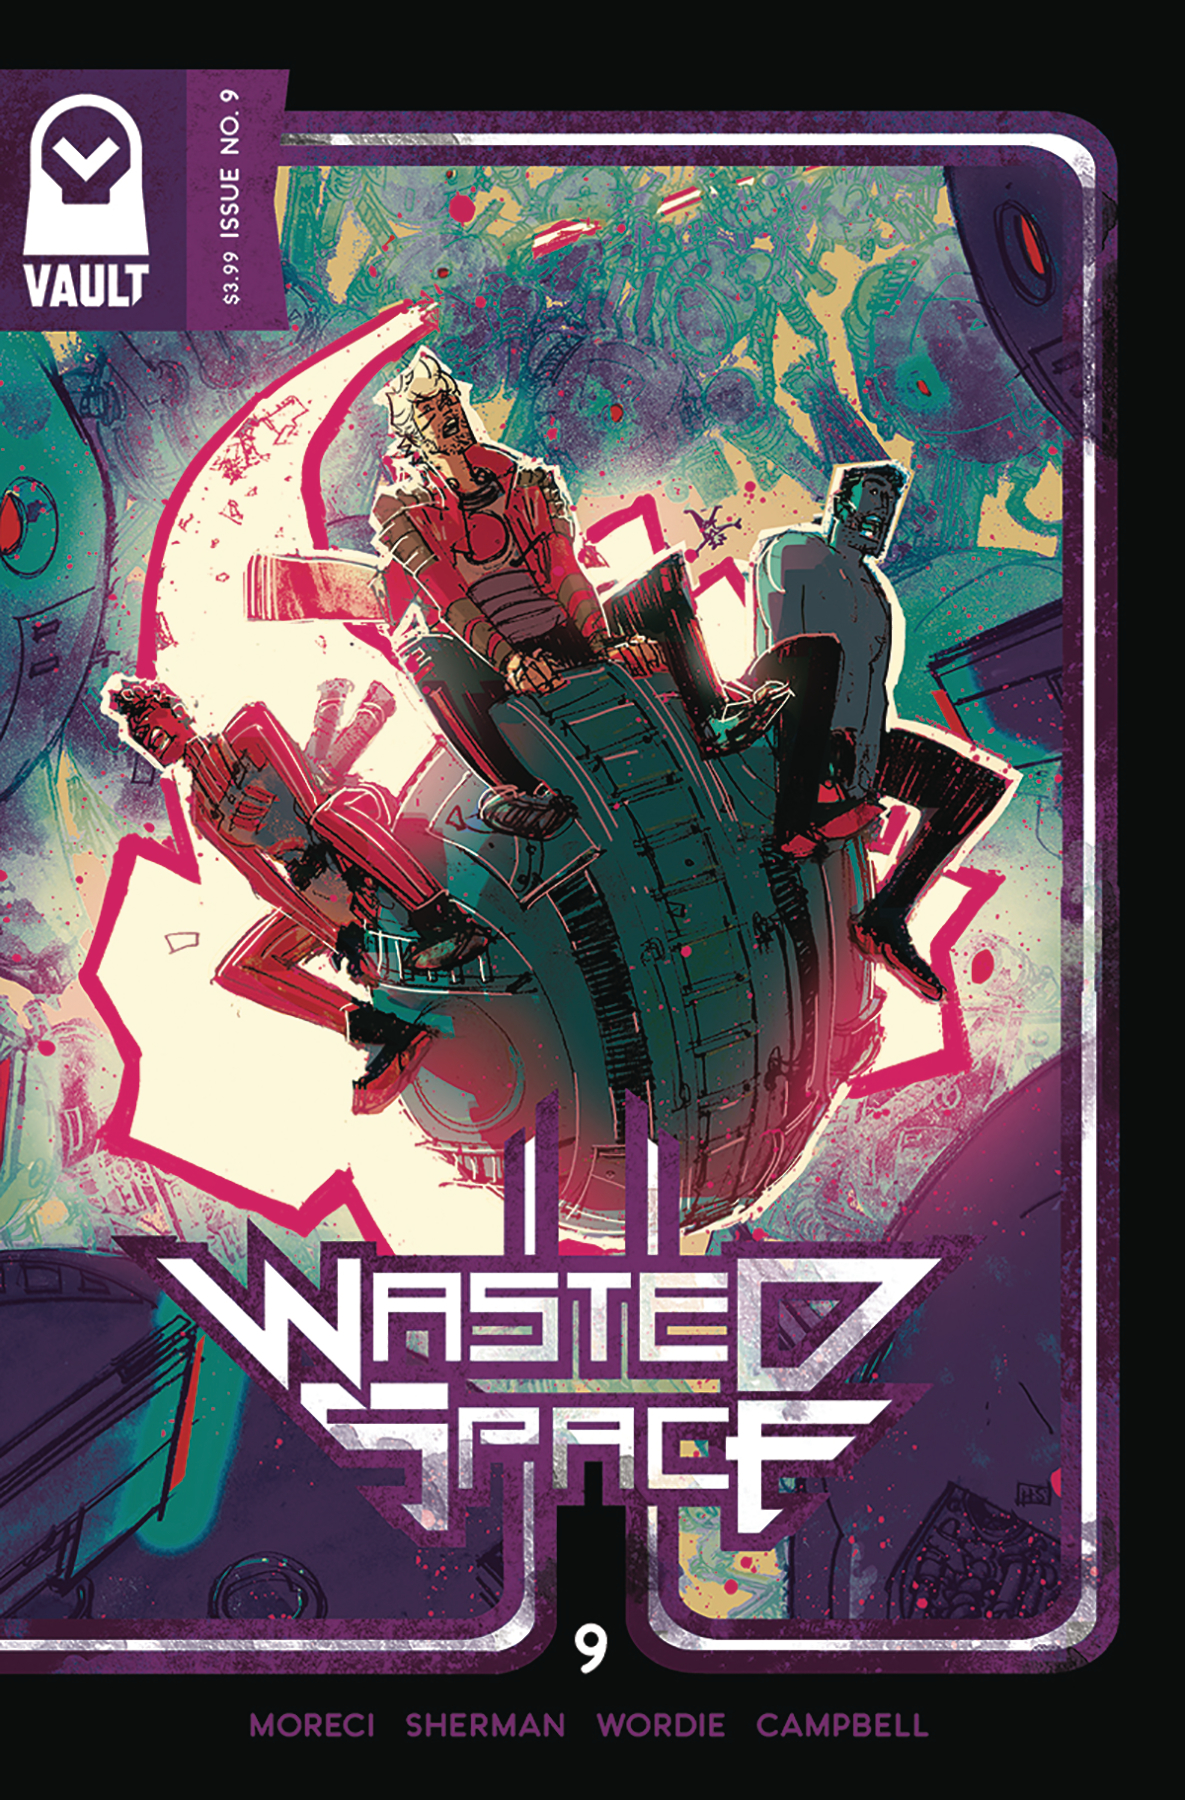 Wasted Space #9  is out 5/8/2019.